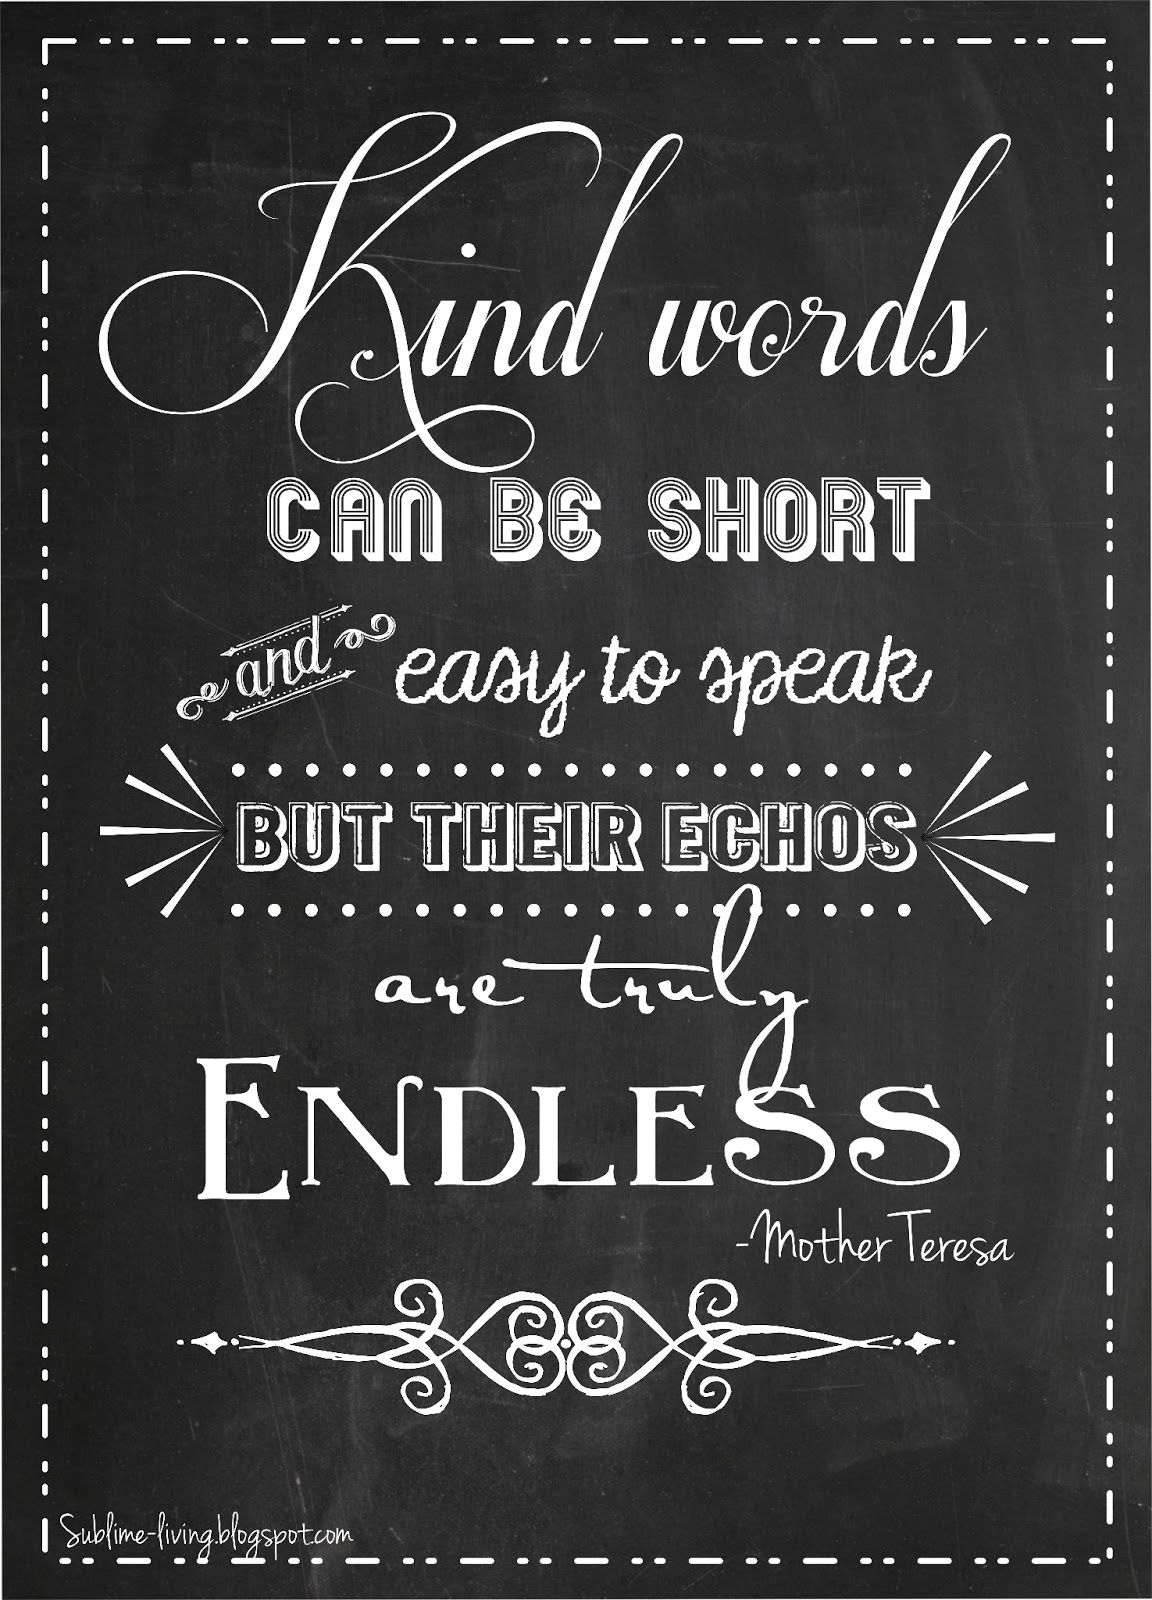 Sublime Living With Images Kindness Quotes Mother Teresa